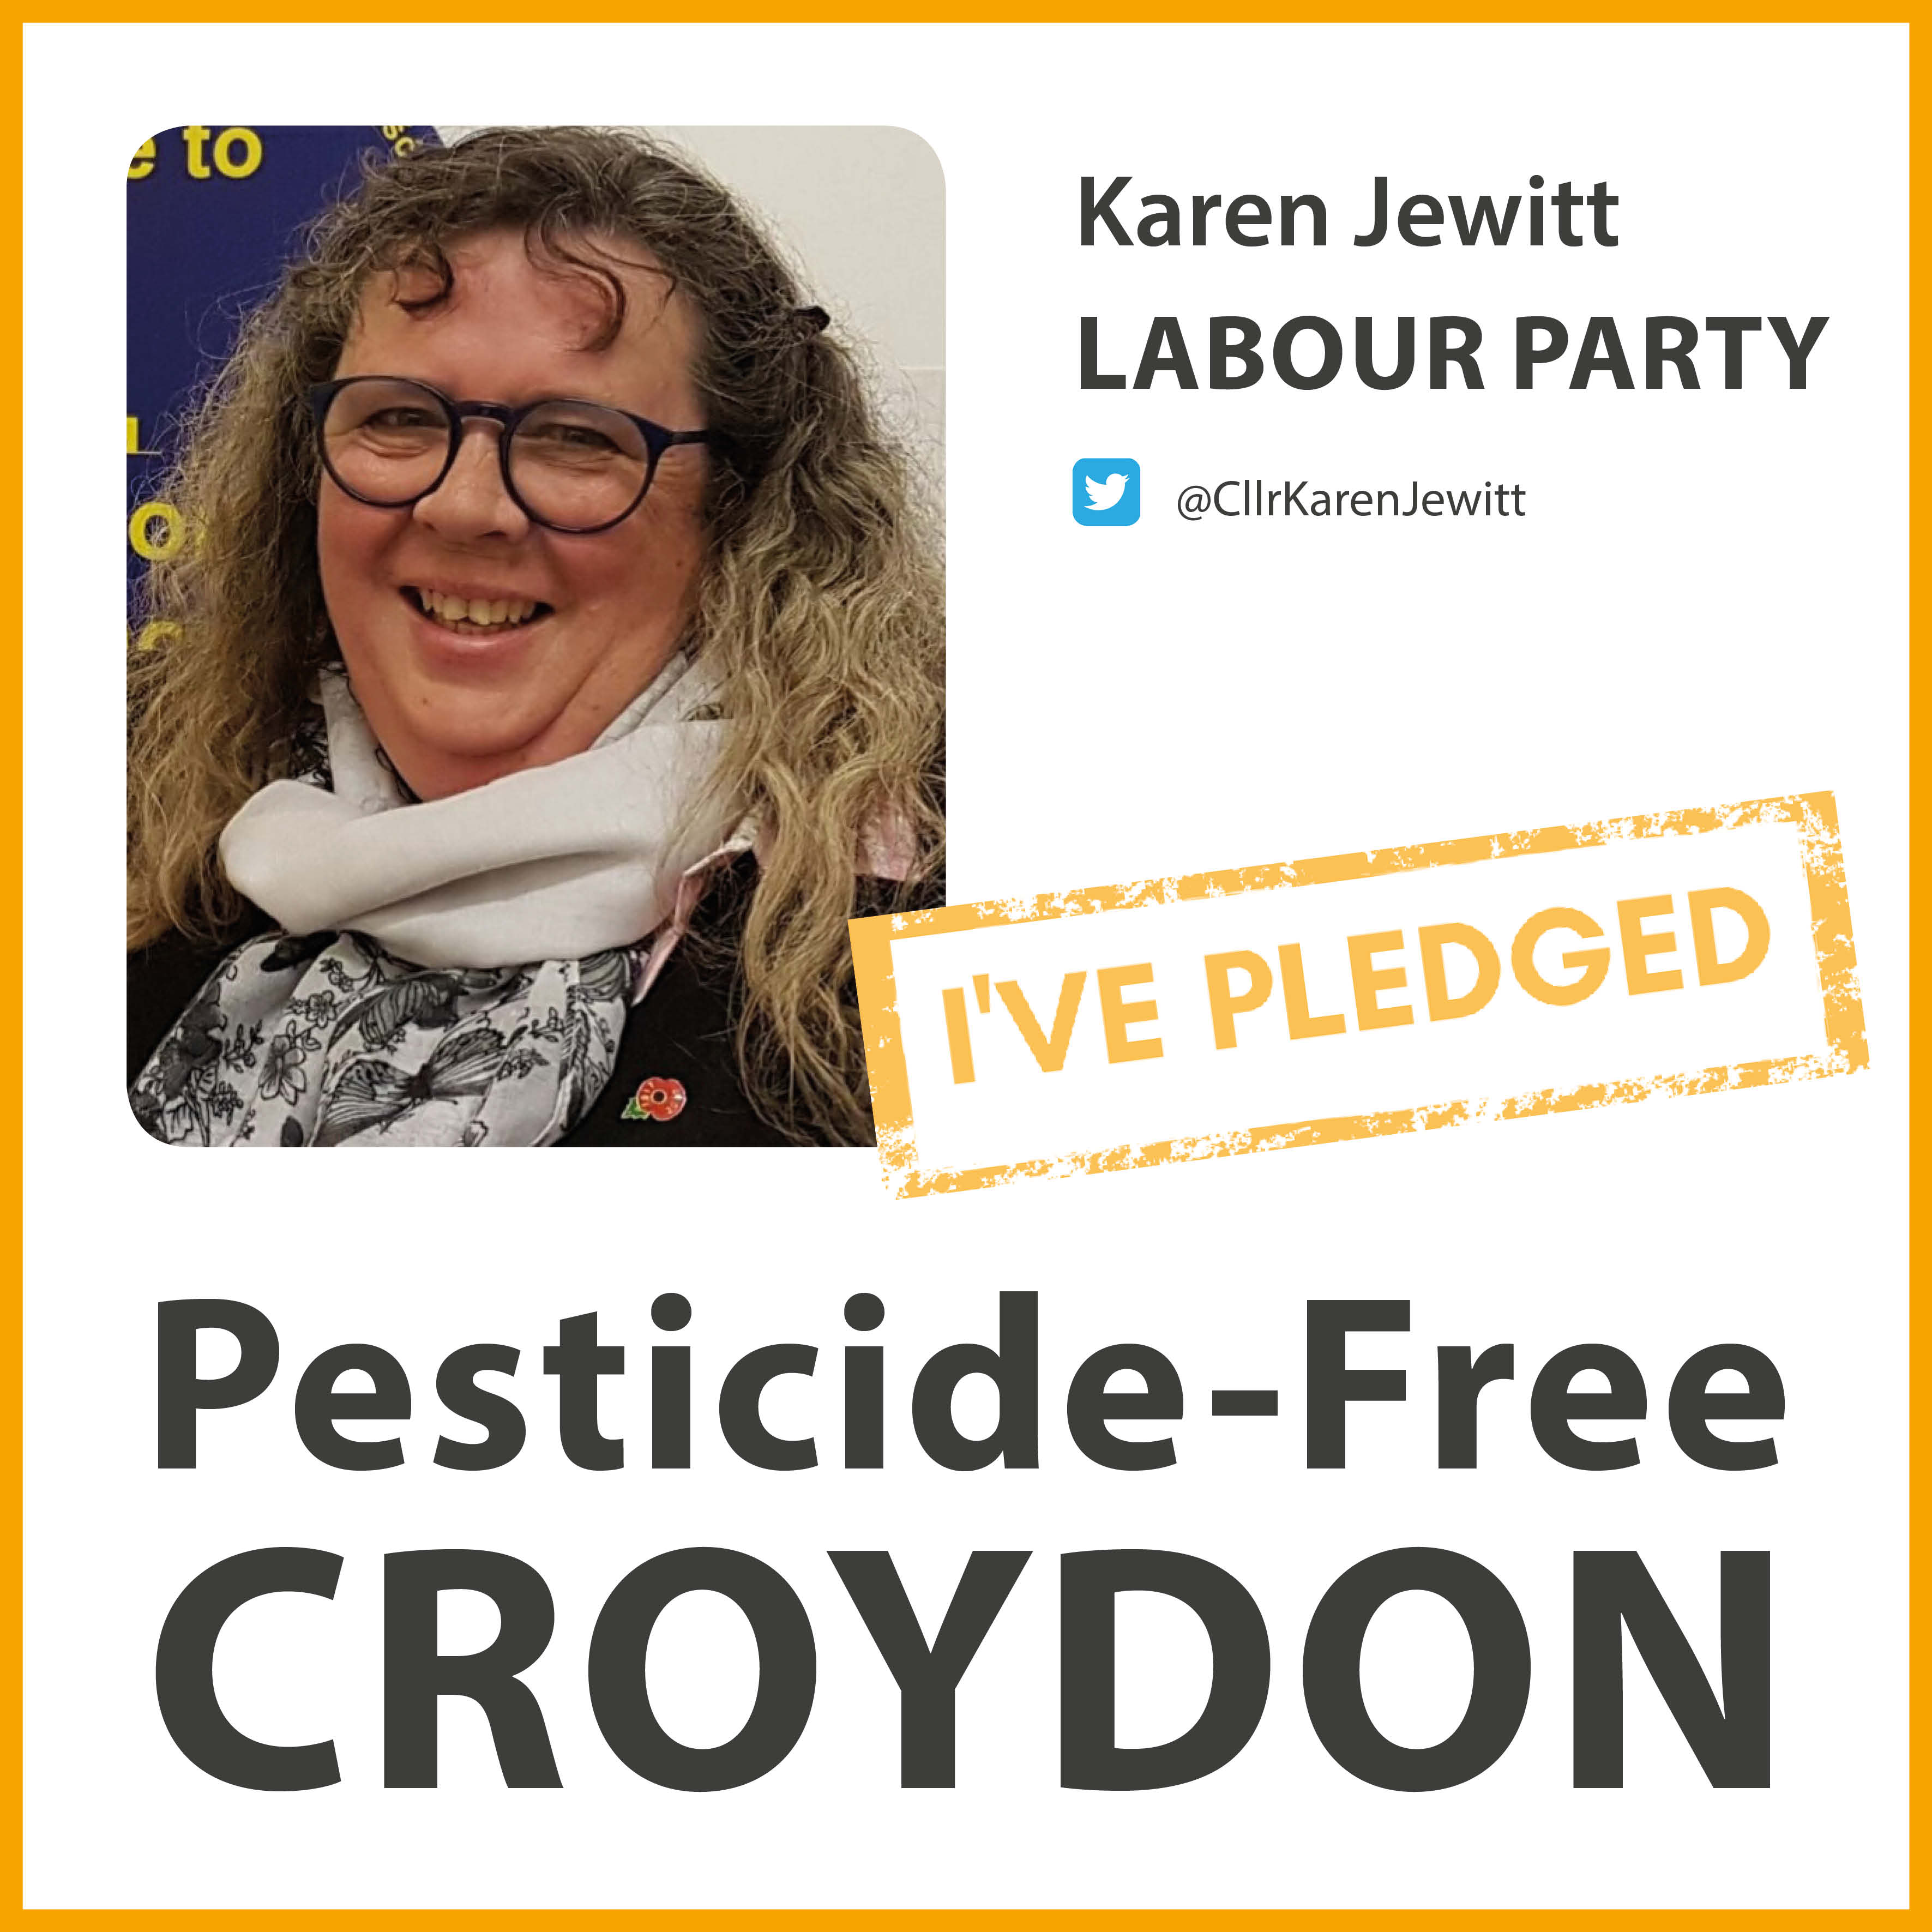 Karen Jewitt has taken the pesticide-free pledge in Croydon